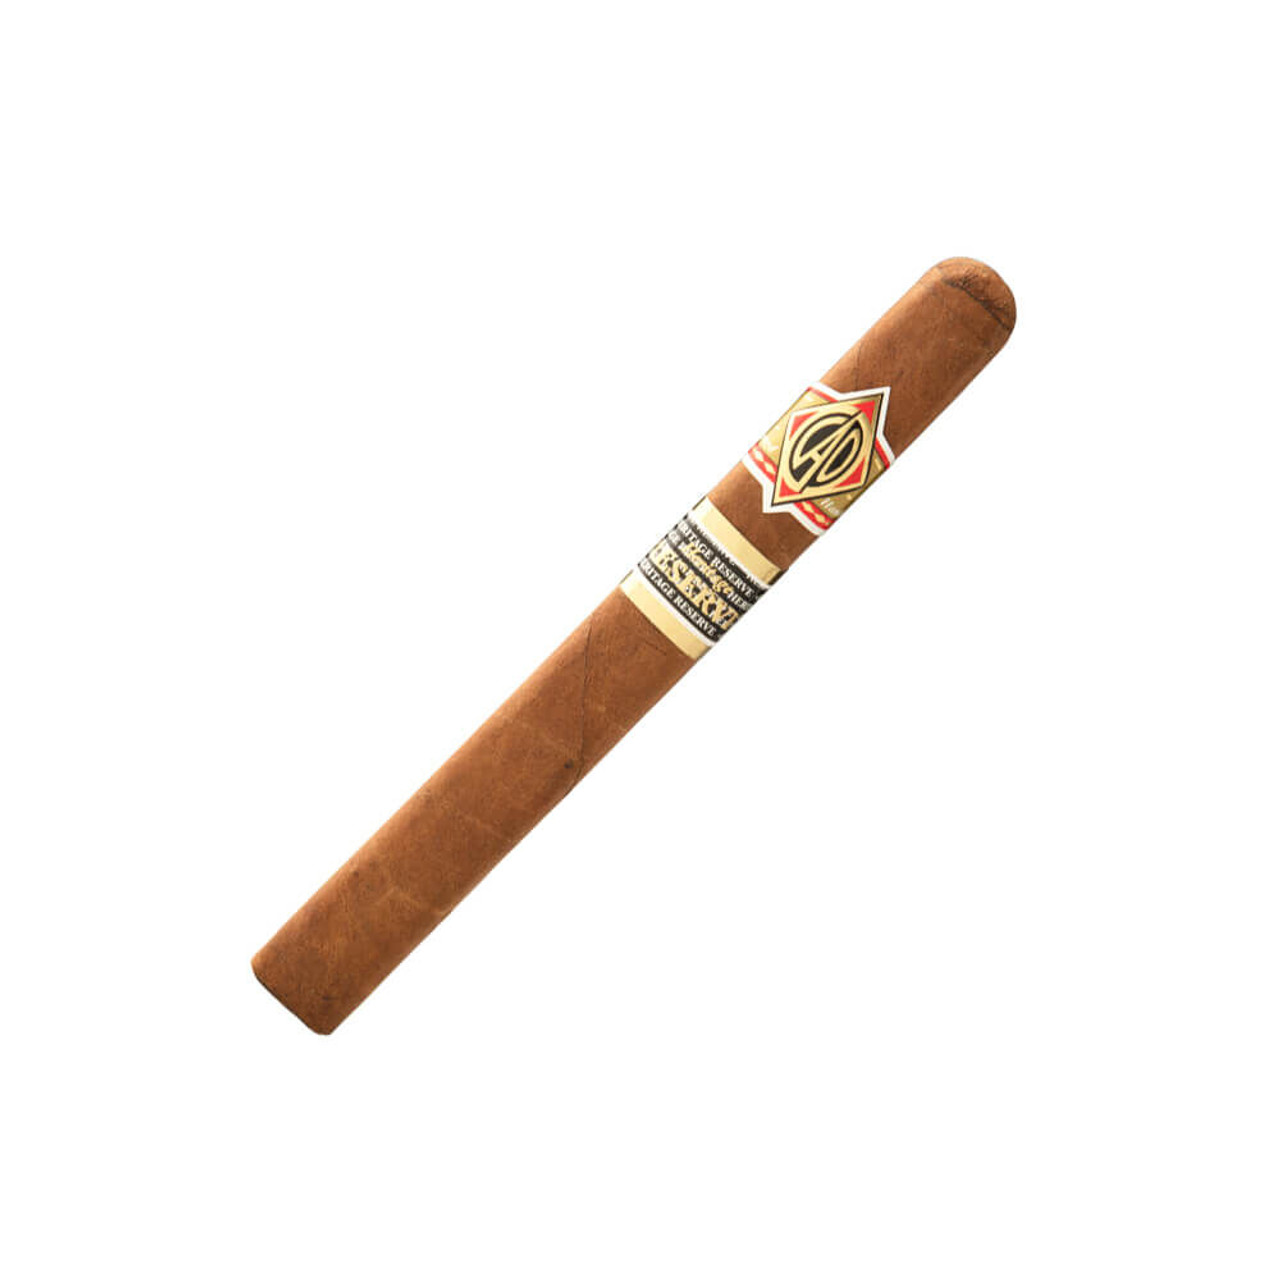 CAO Heritage Reserve Corona Larga Cigars - 6.25 x 45 (Box of 18)